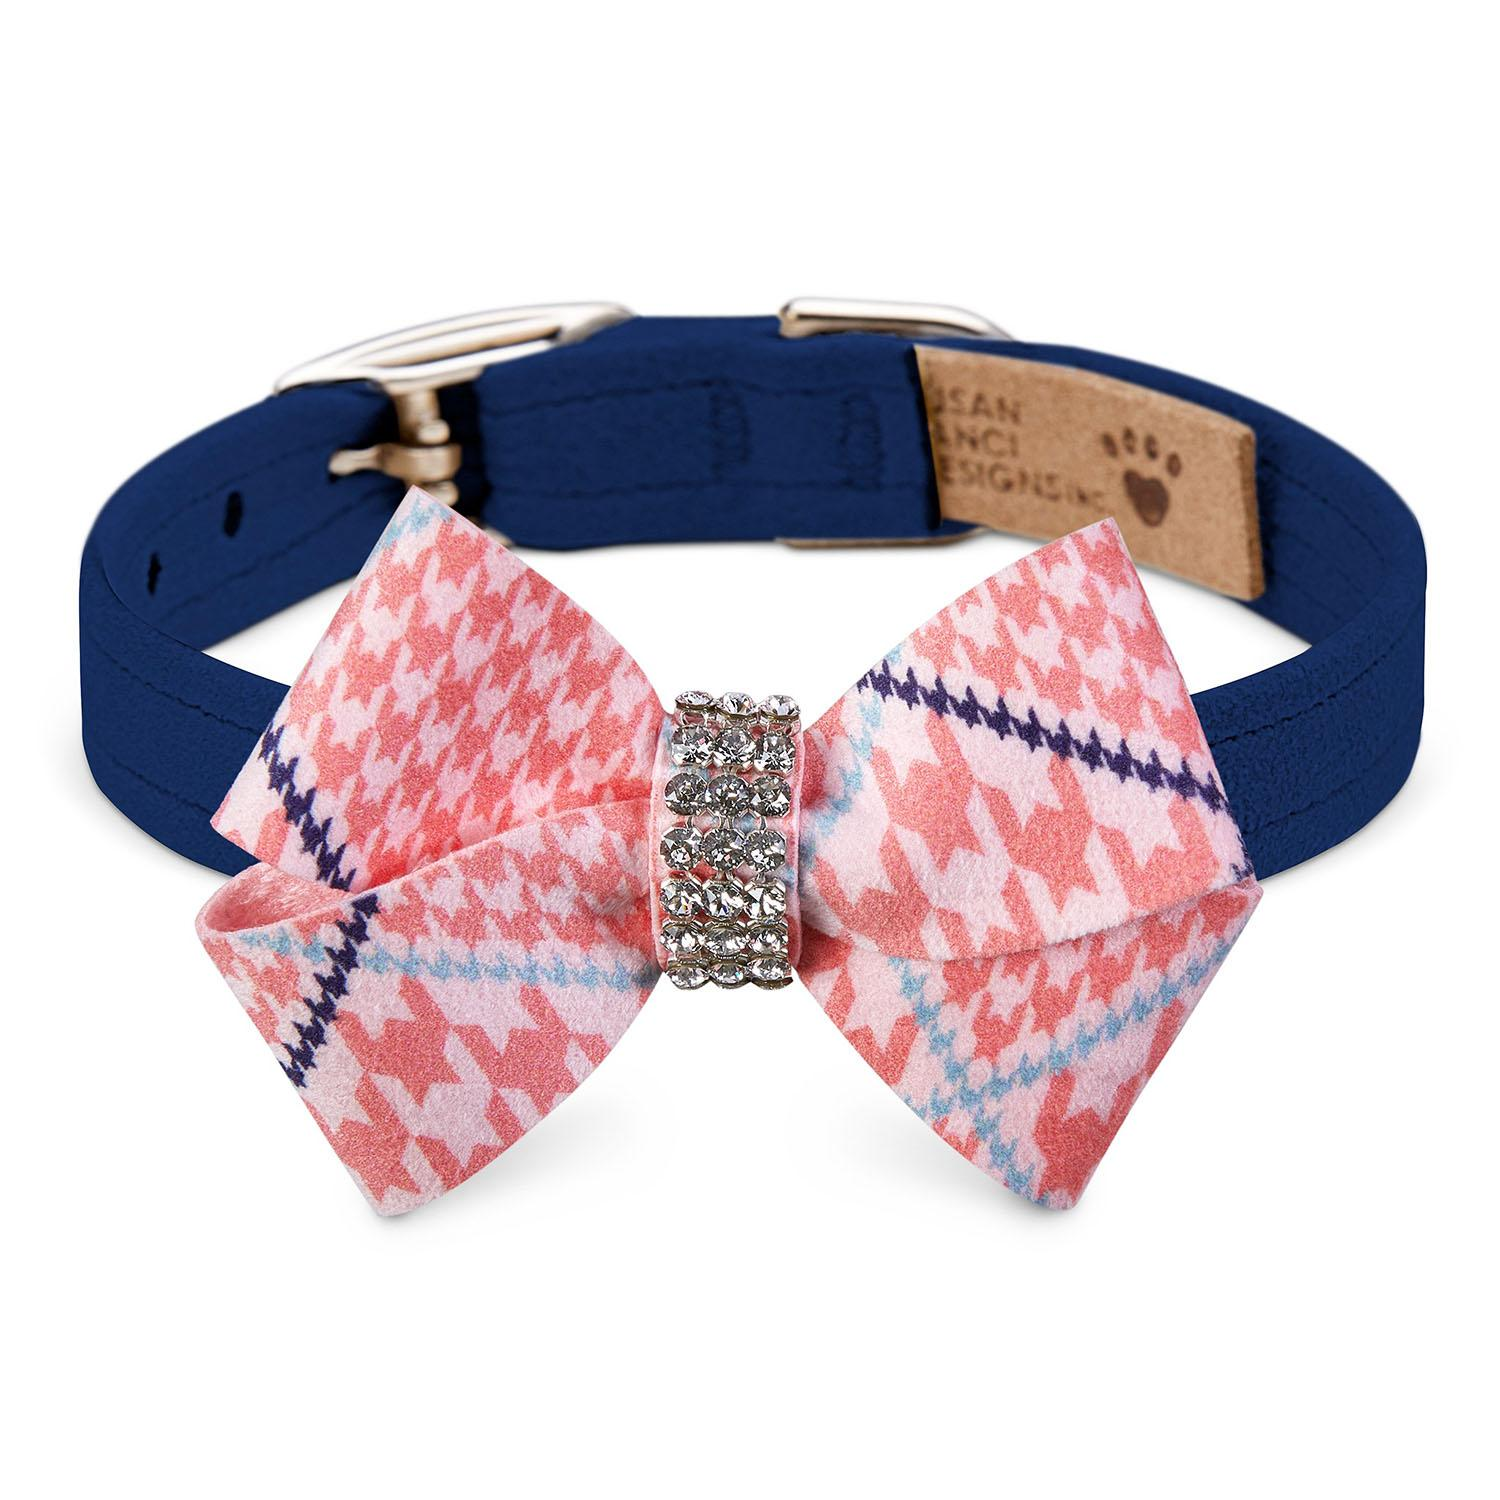 Peaches & Cream Glen Houndstooth Nouveau Bow Luxury Dog Collar by Susan Lanci - Indigo